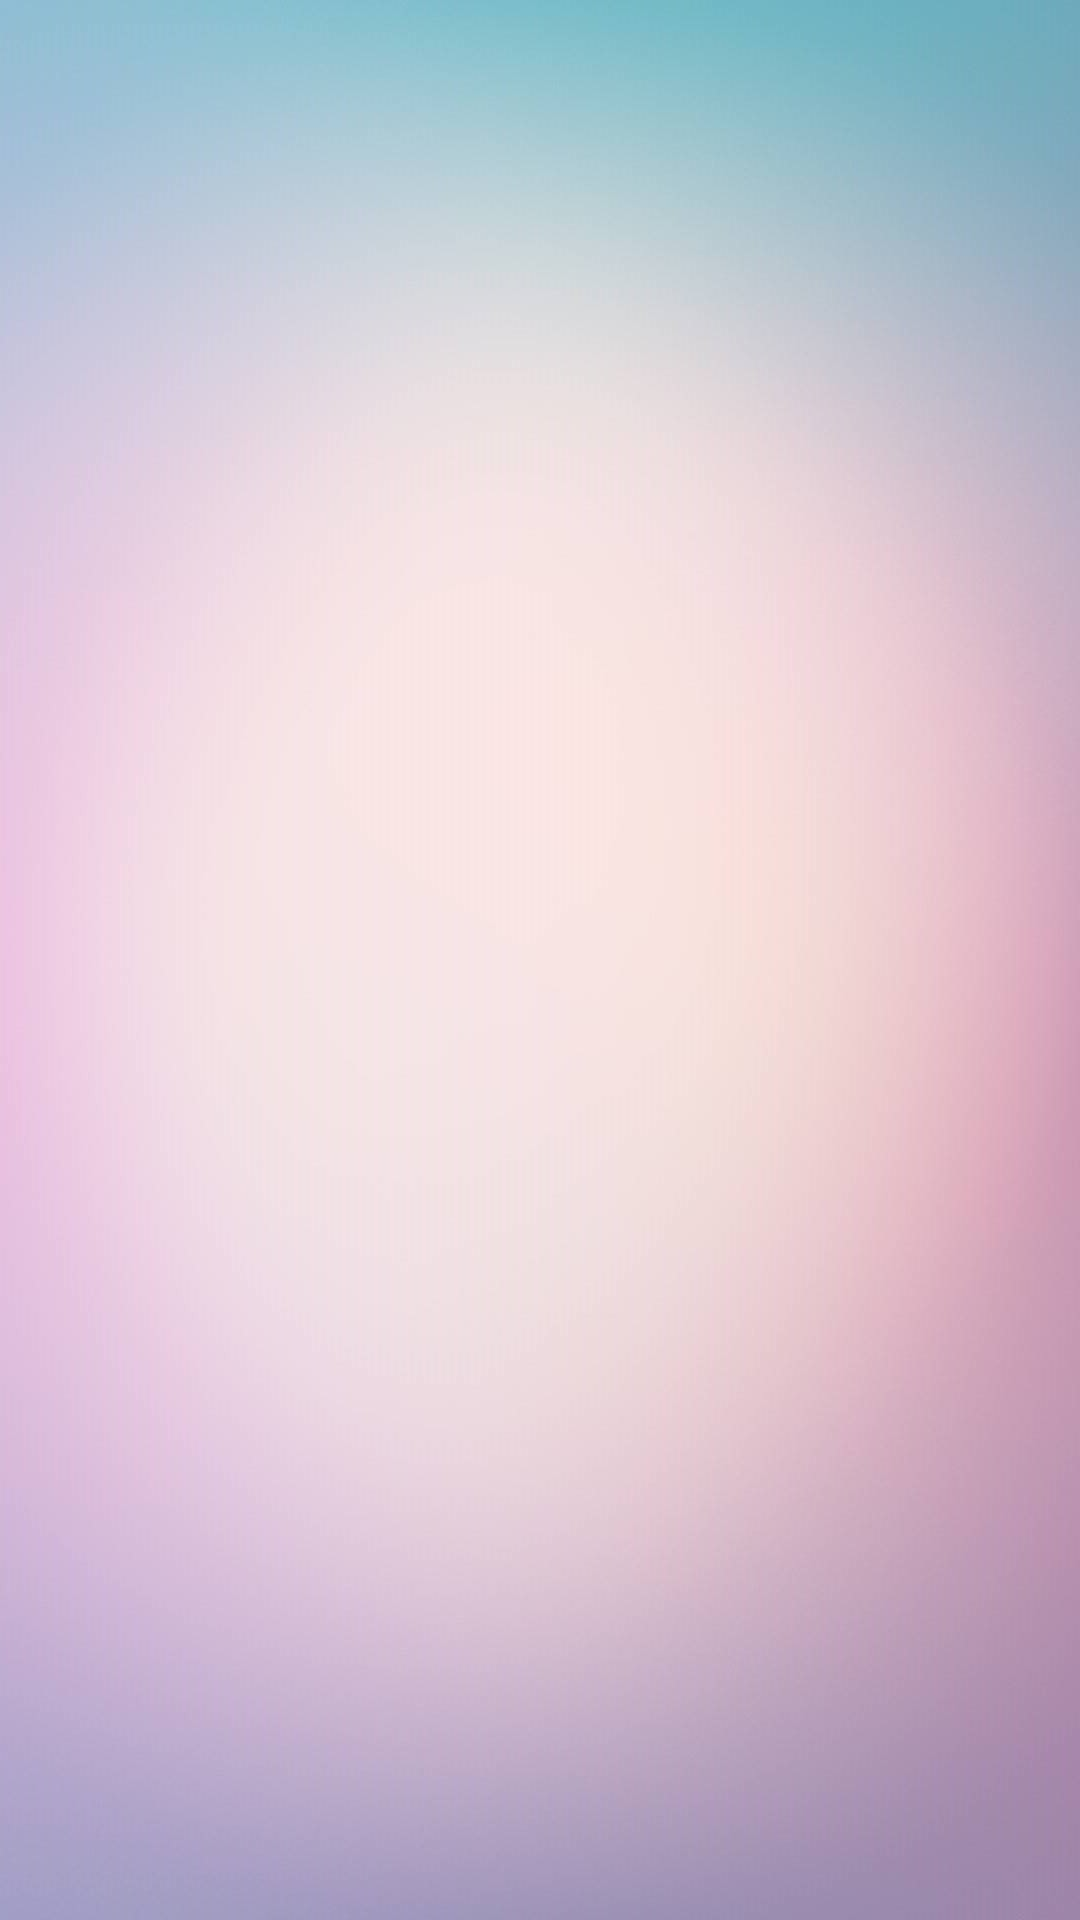 Calming-Blurred-Background-Calming-blurred-lights-and-gradients-for-iPhone-mobile-wallpaper-wp3403689